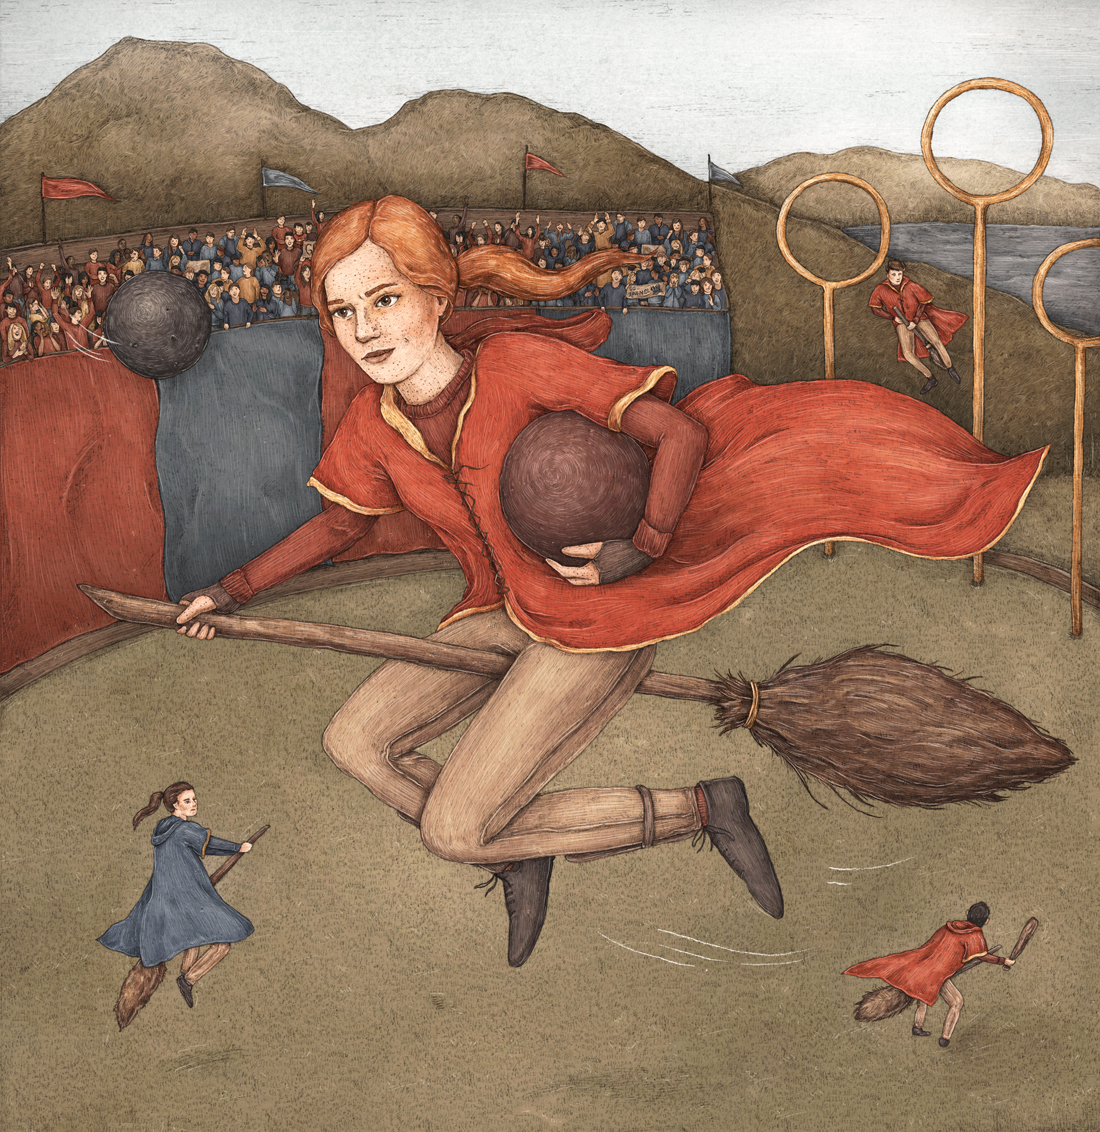 Illustration of Ginny Weasley playing Quidditch, by Jessica Roux